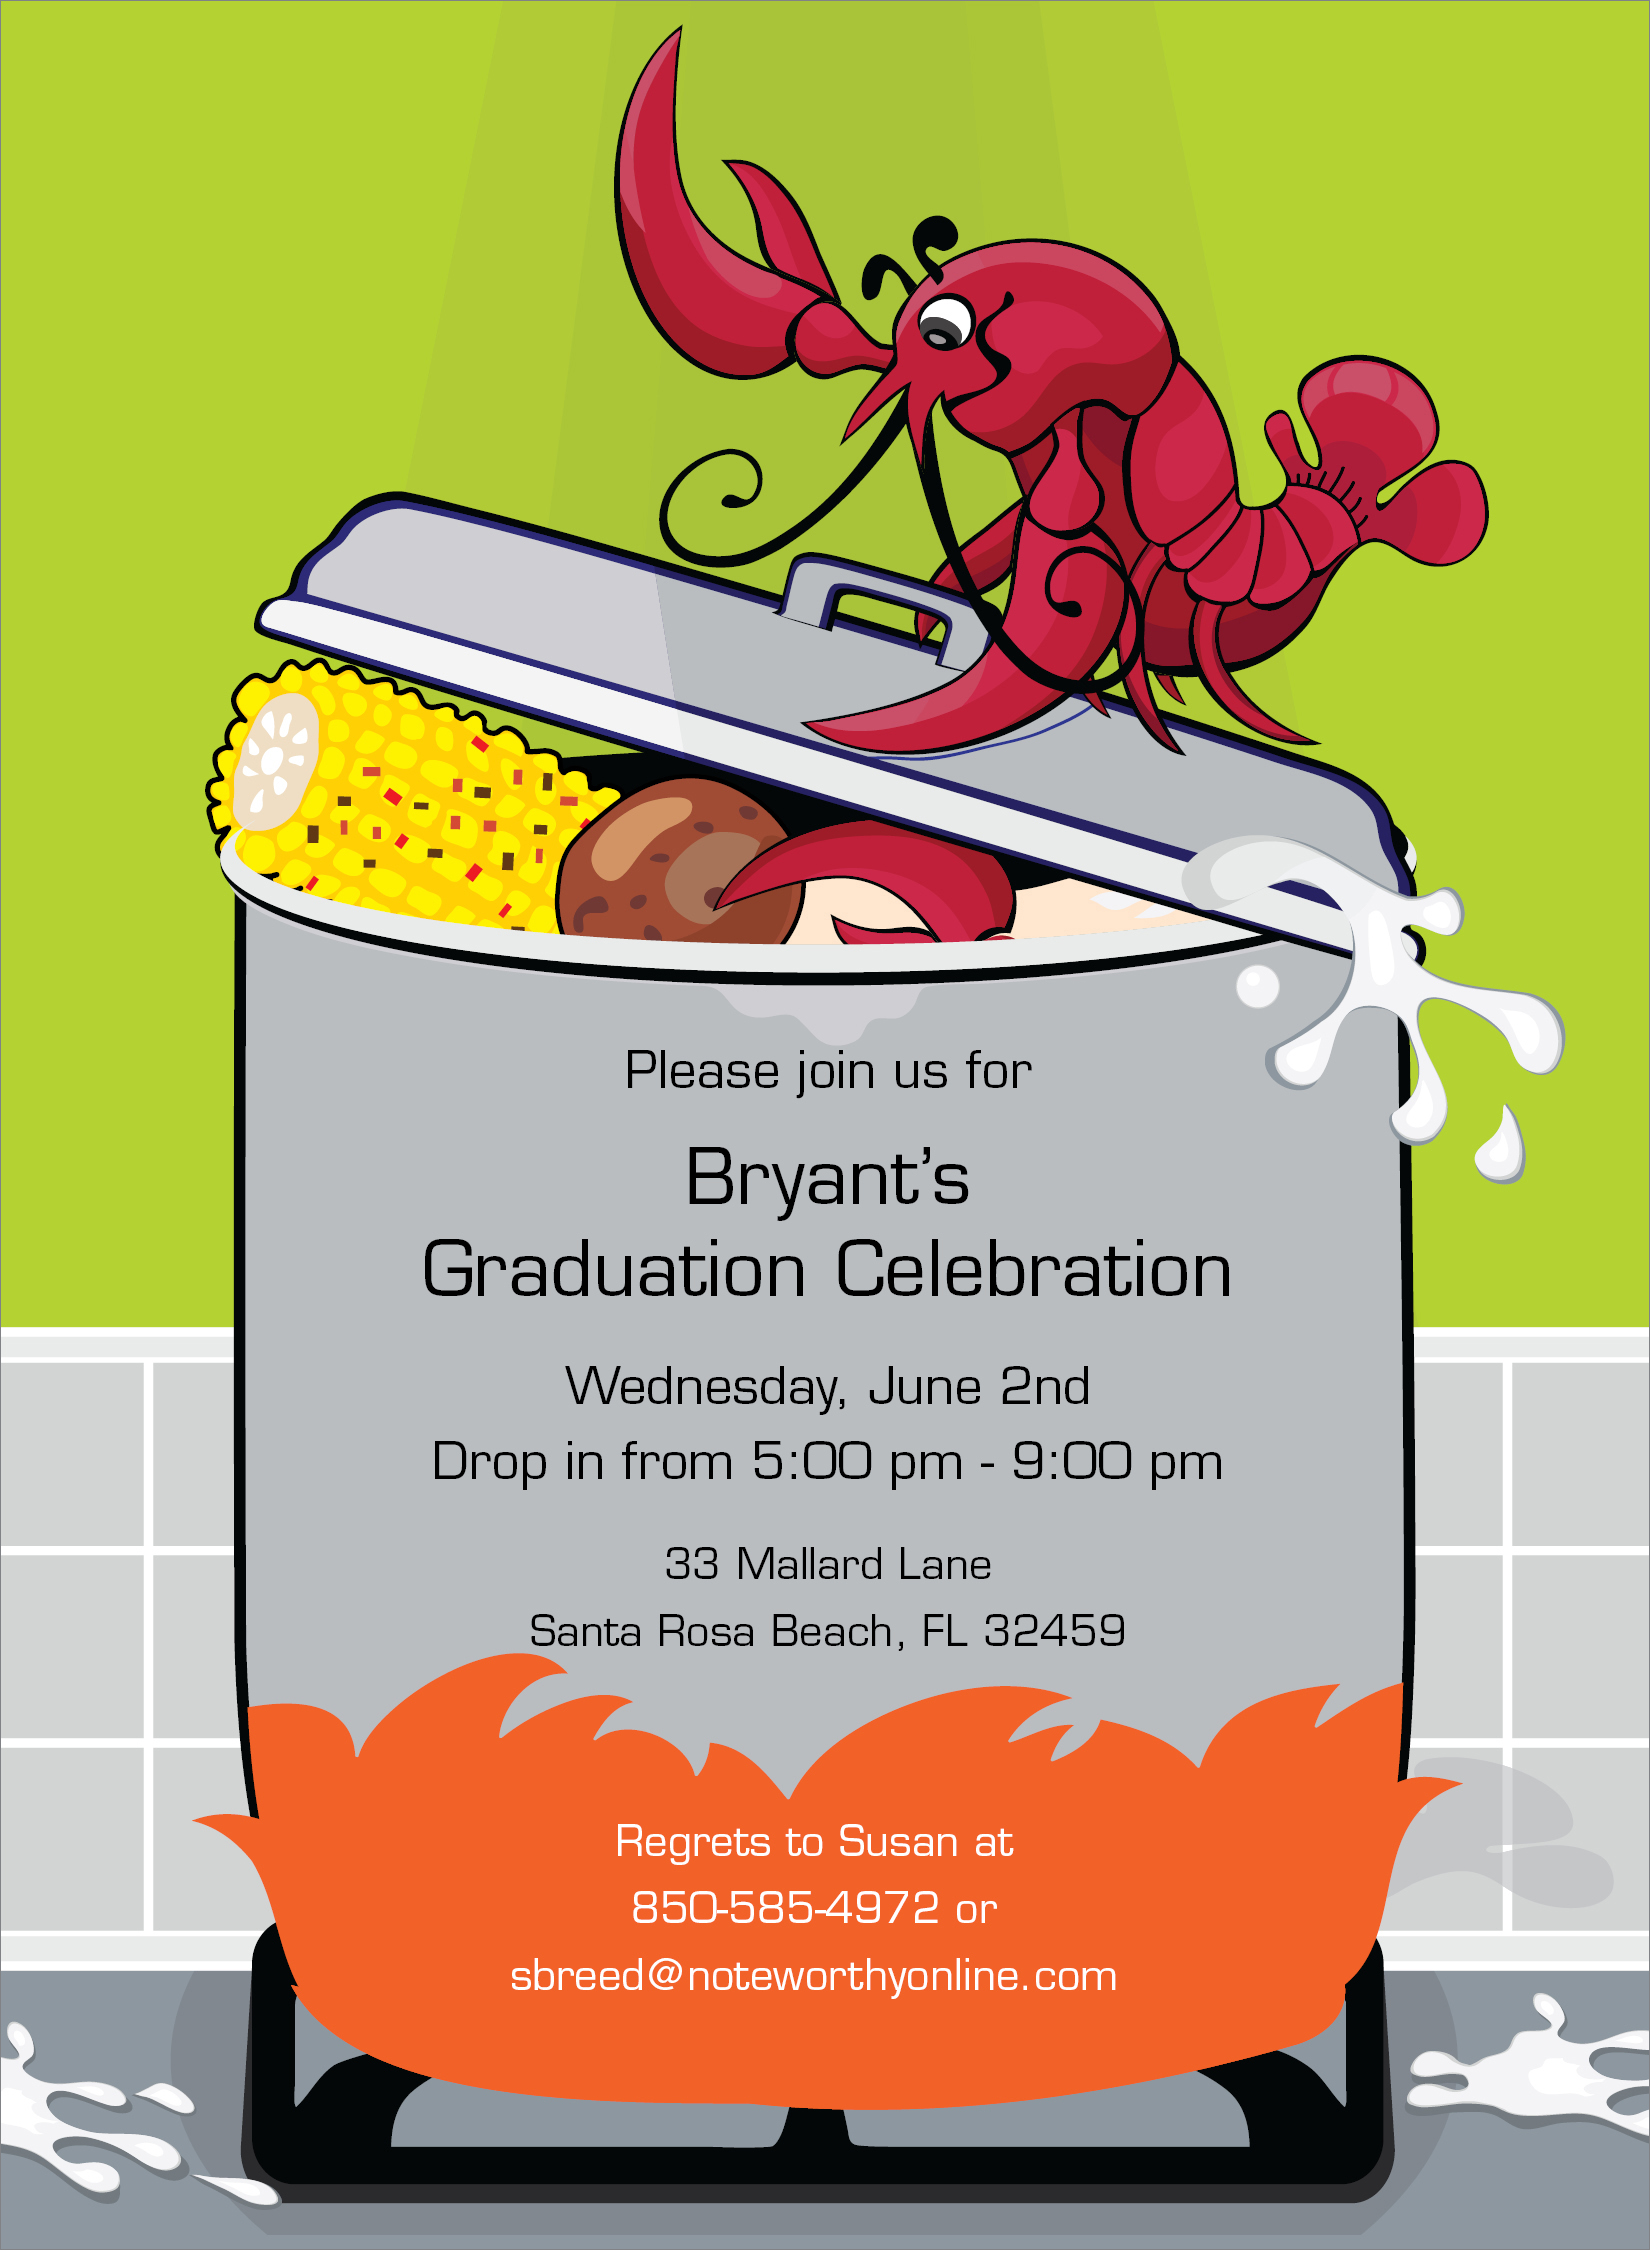 Graduation clipart crawfish Crawfish pot The collection clipart